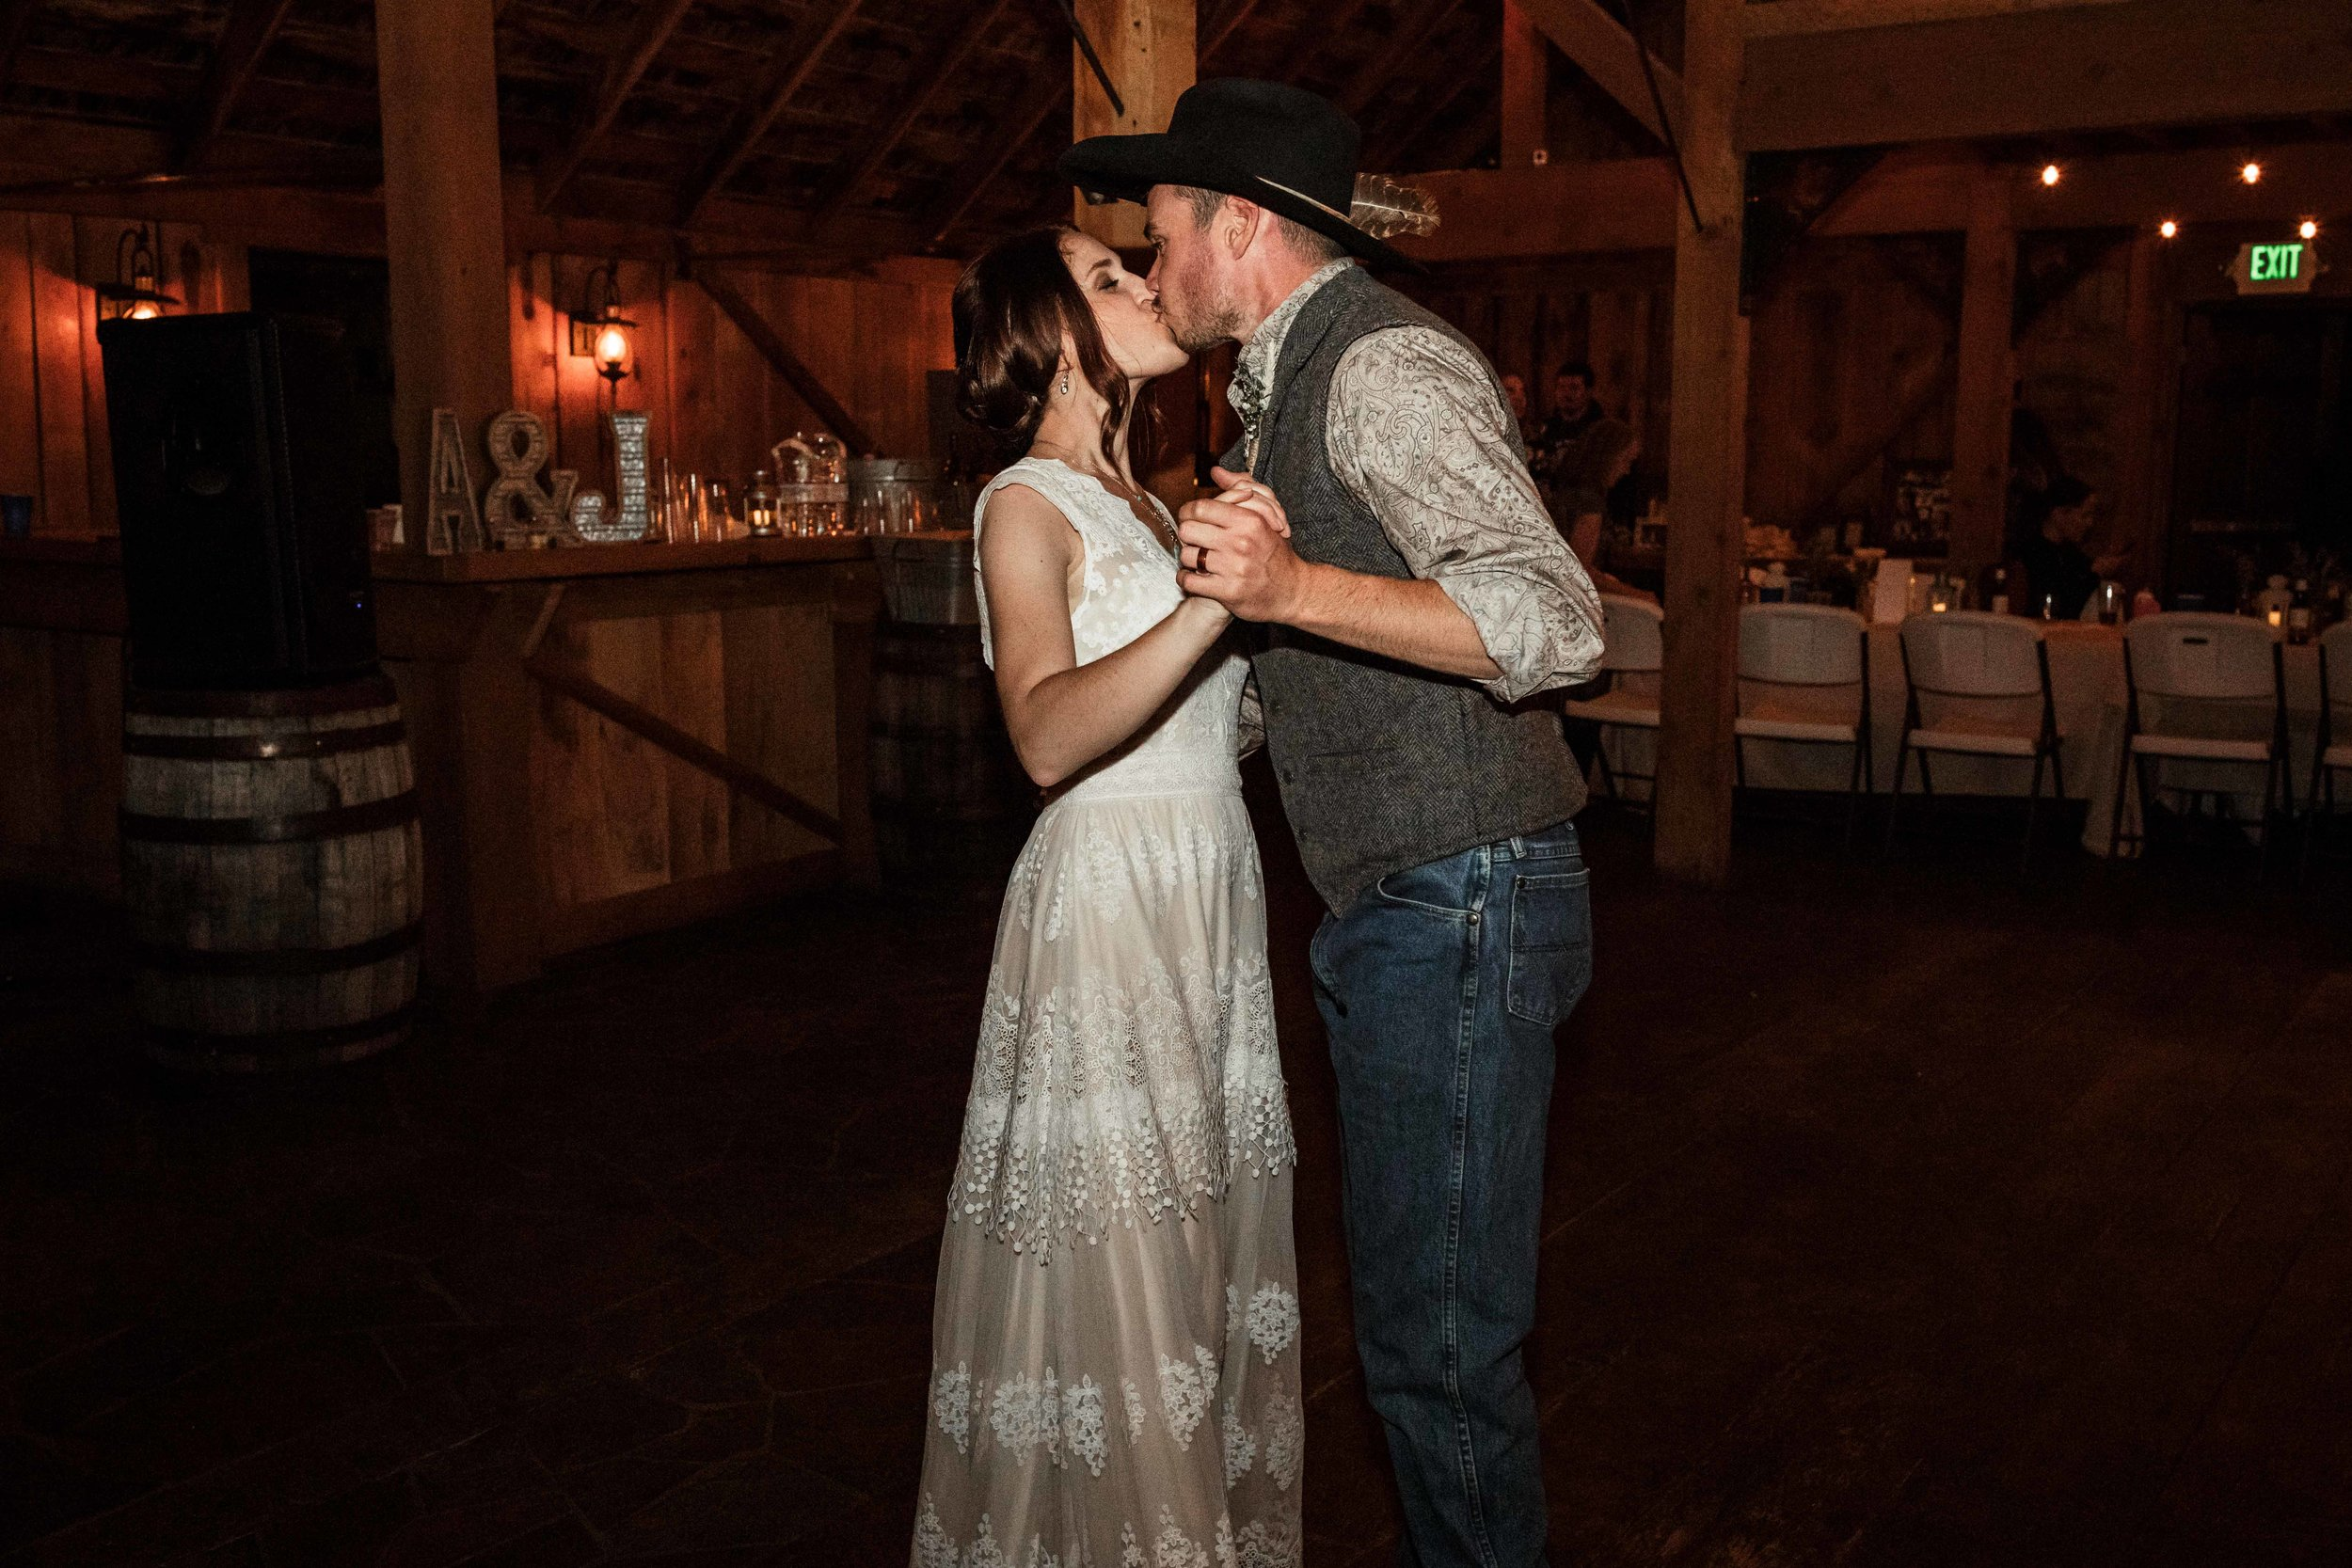 the-cattle-barn-wedding-93.jpg